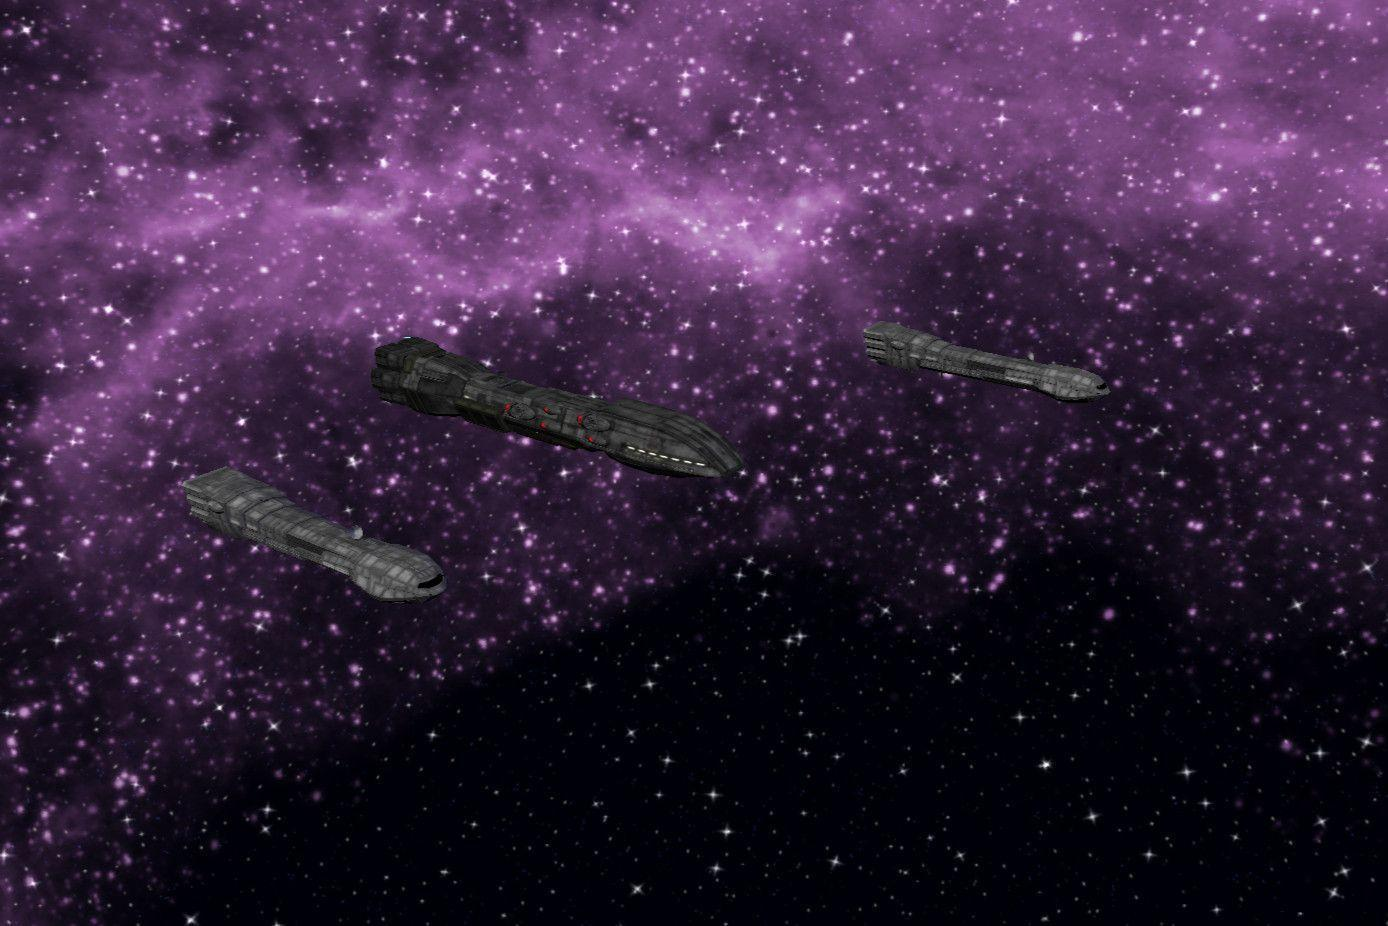 New Space Backgrounds image